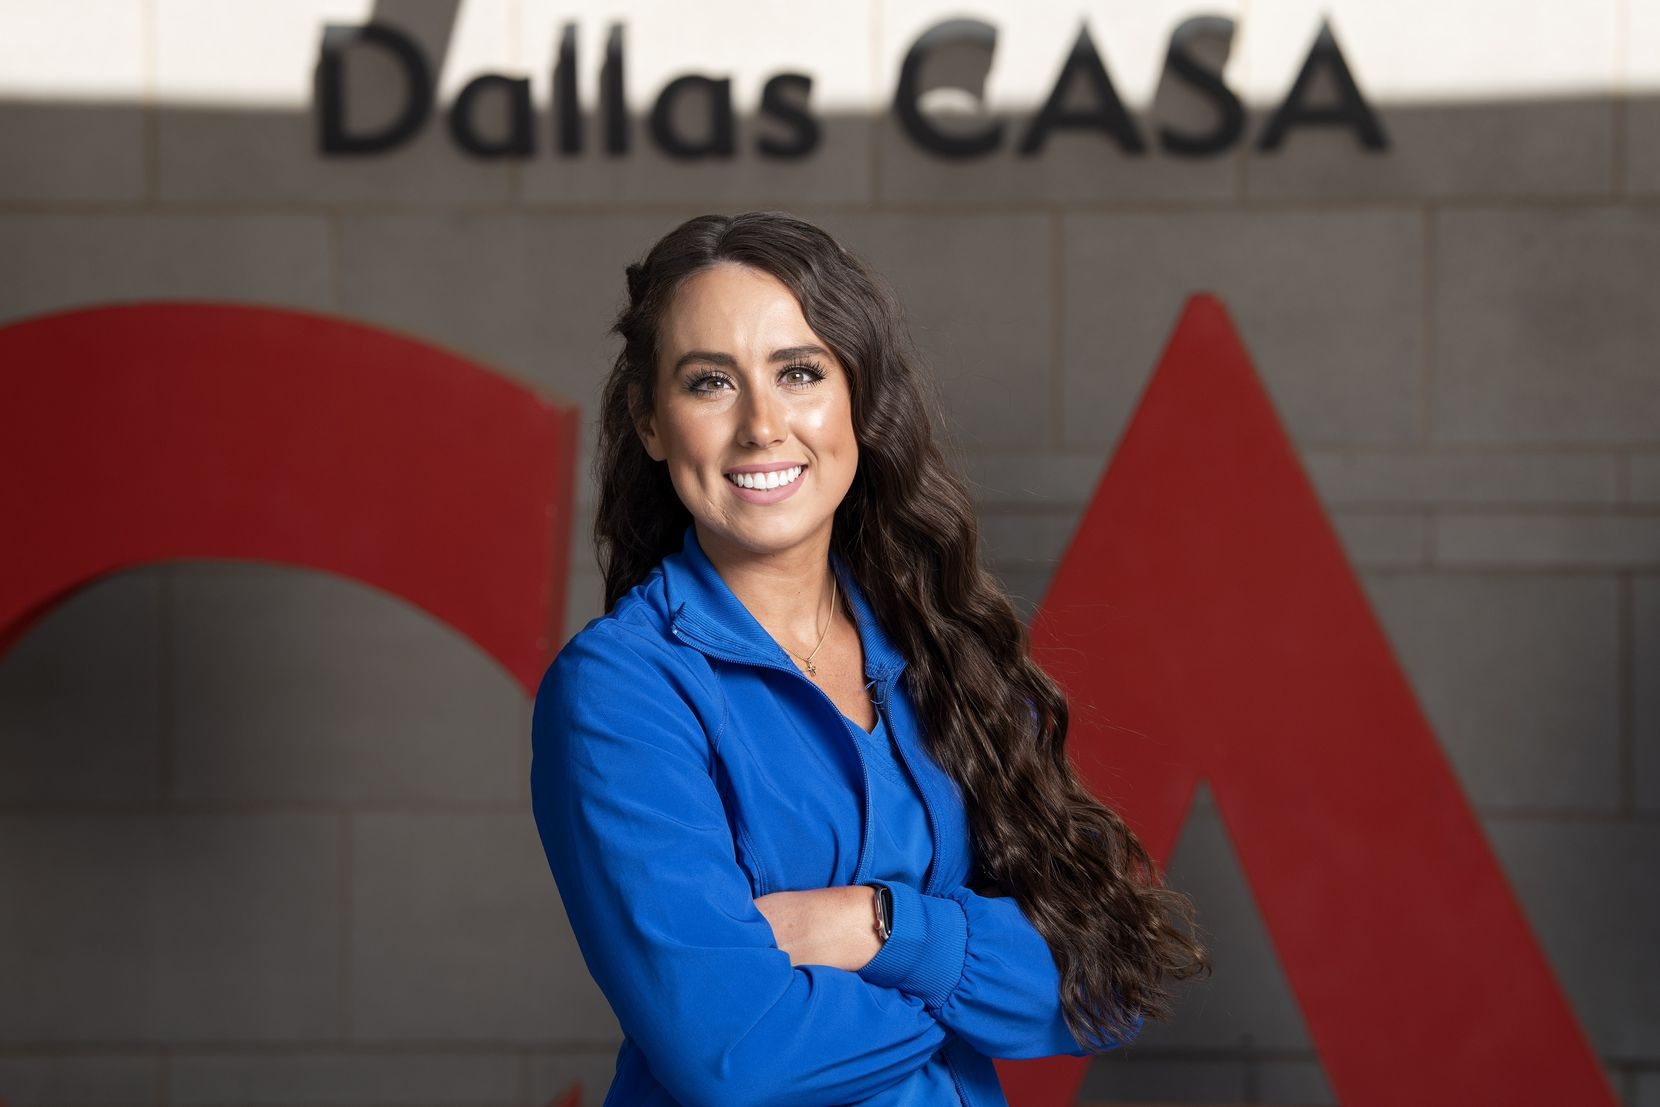 """Dallas CASA volunteer and Parkland nurse Hannah Pearson acknowledged that her coronavirus work is high-stress but said she's the perfect candidate for it:  """"I'm young, single and live alone so I wouldn't be risking the health of family in my home if I contract it."""""""